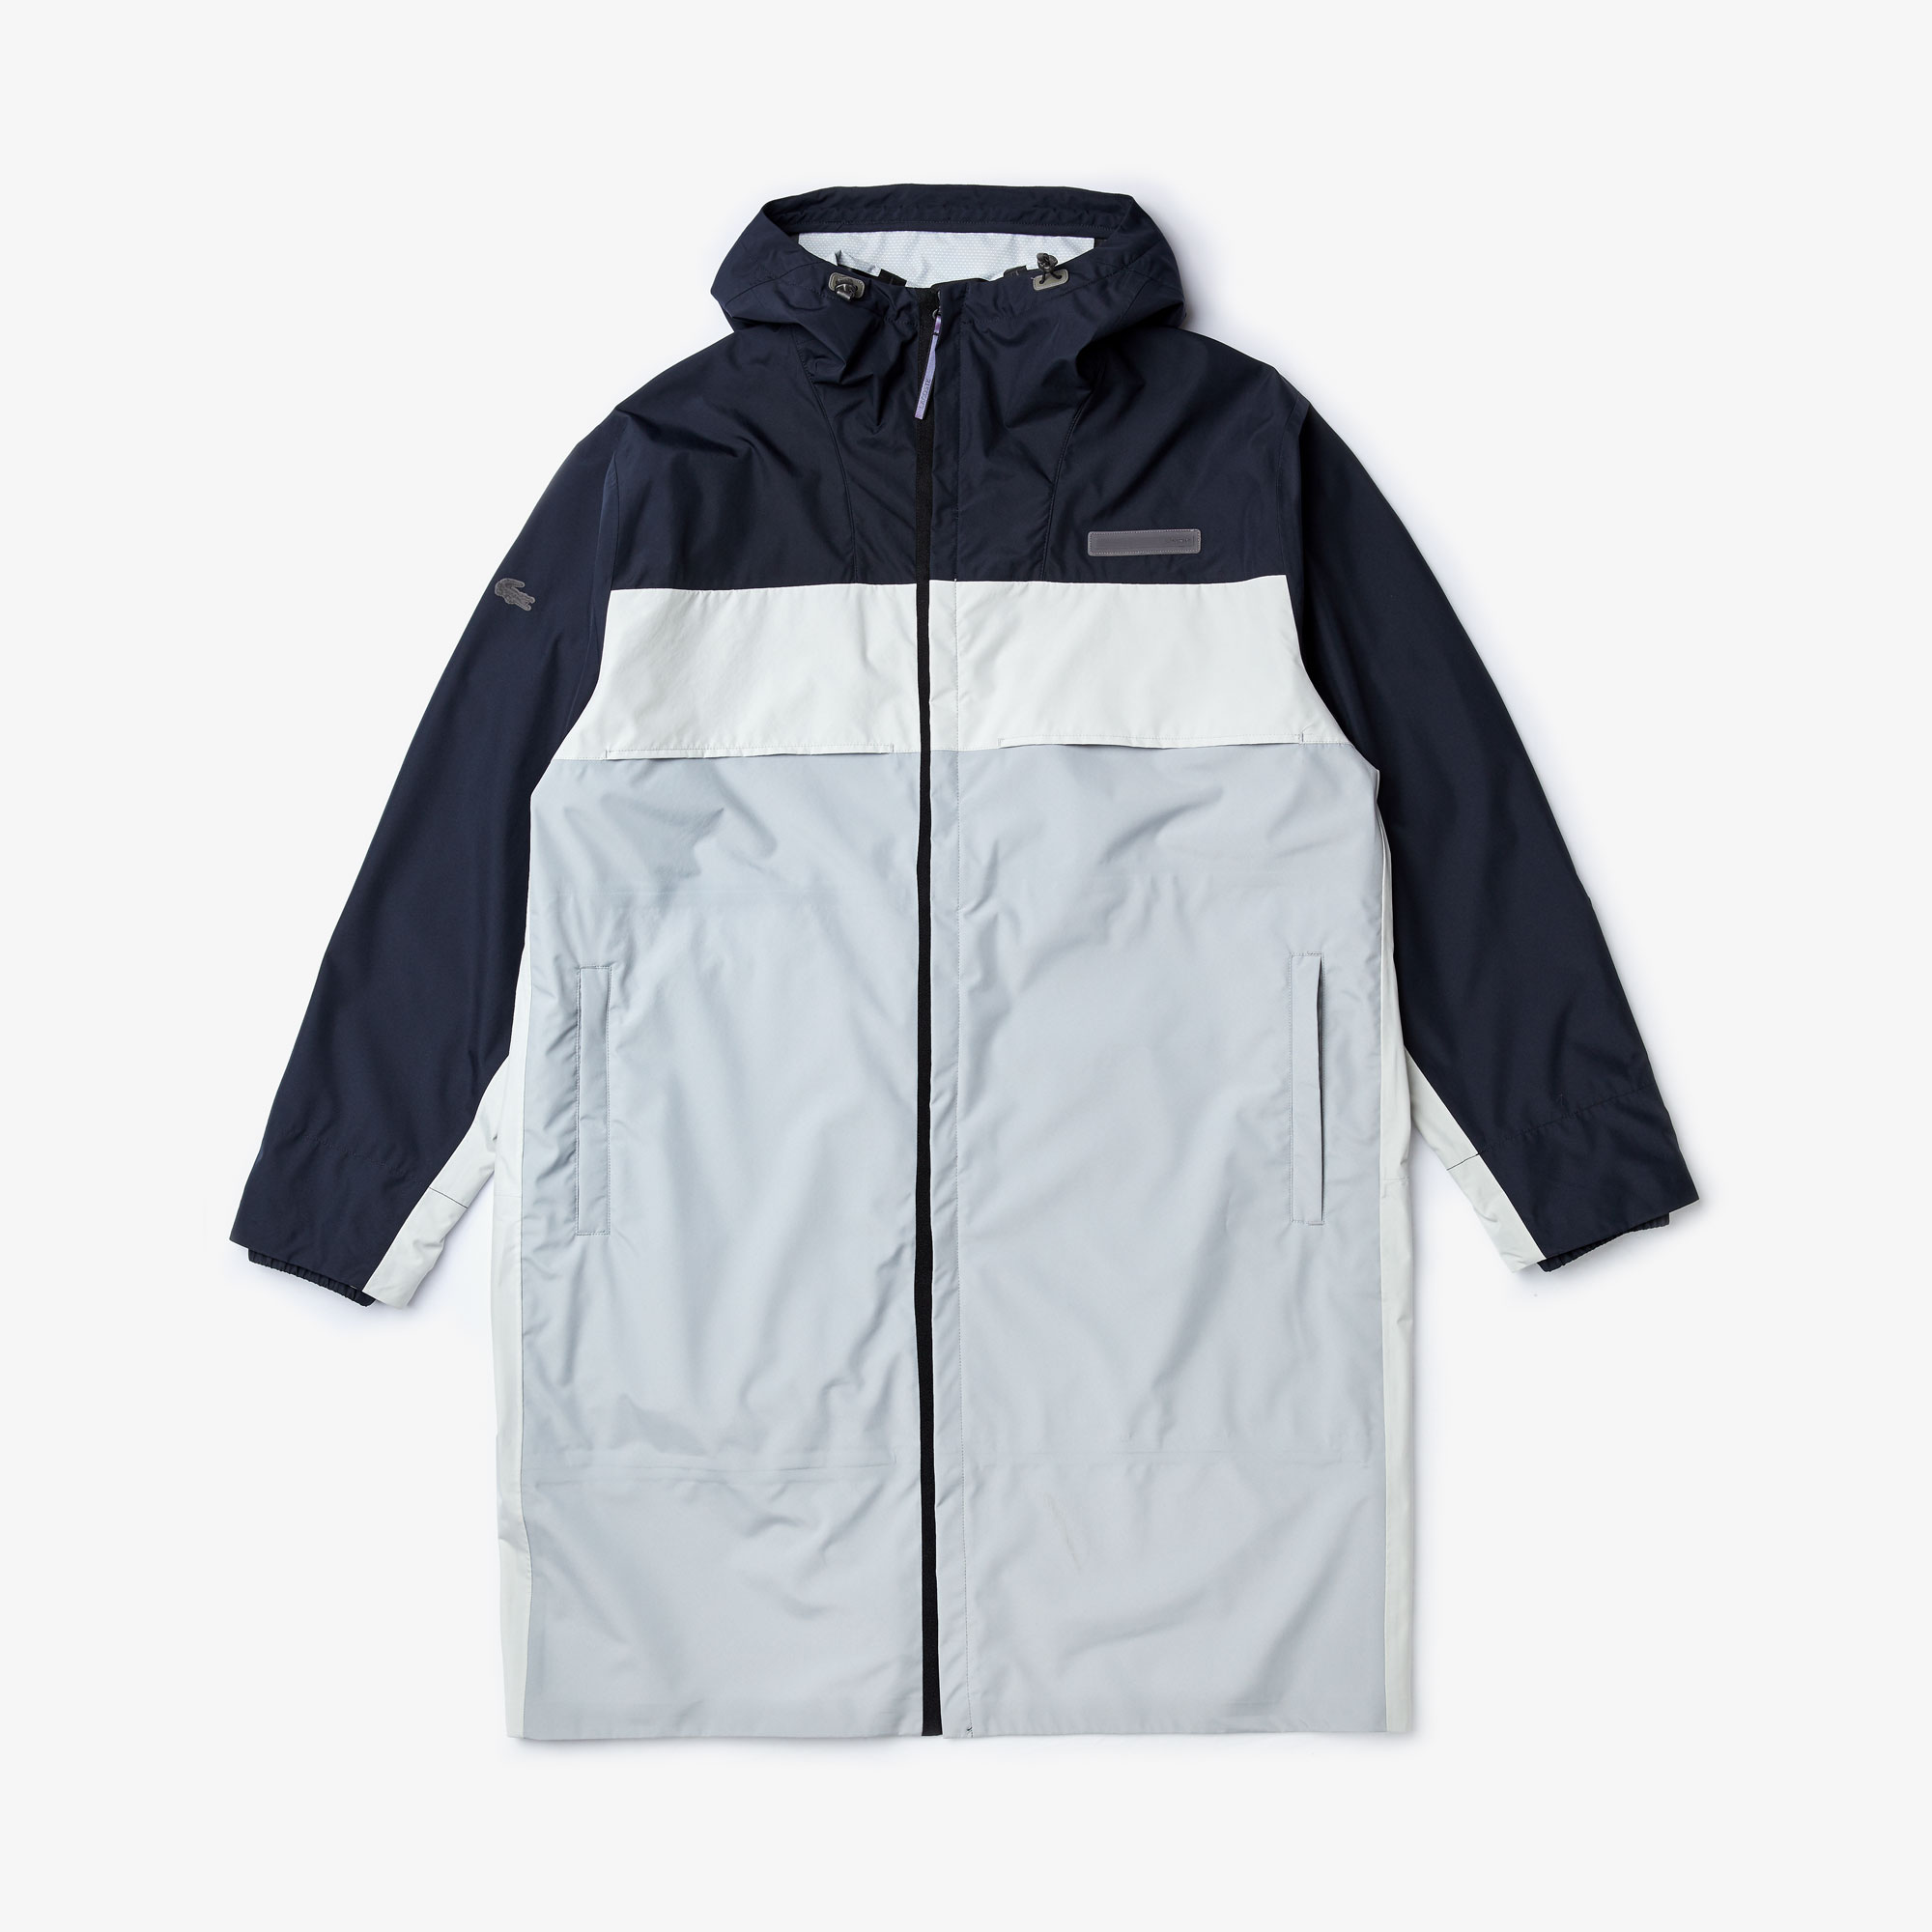 Men's Lacoste Motion Long Light Crease-Proof Water-Resistant Parka